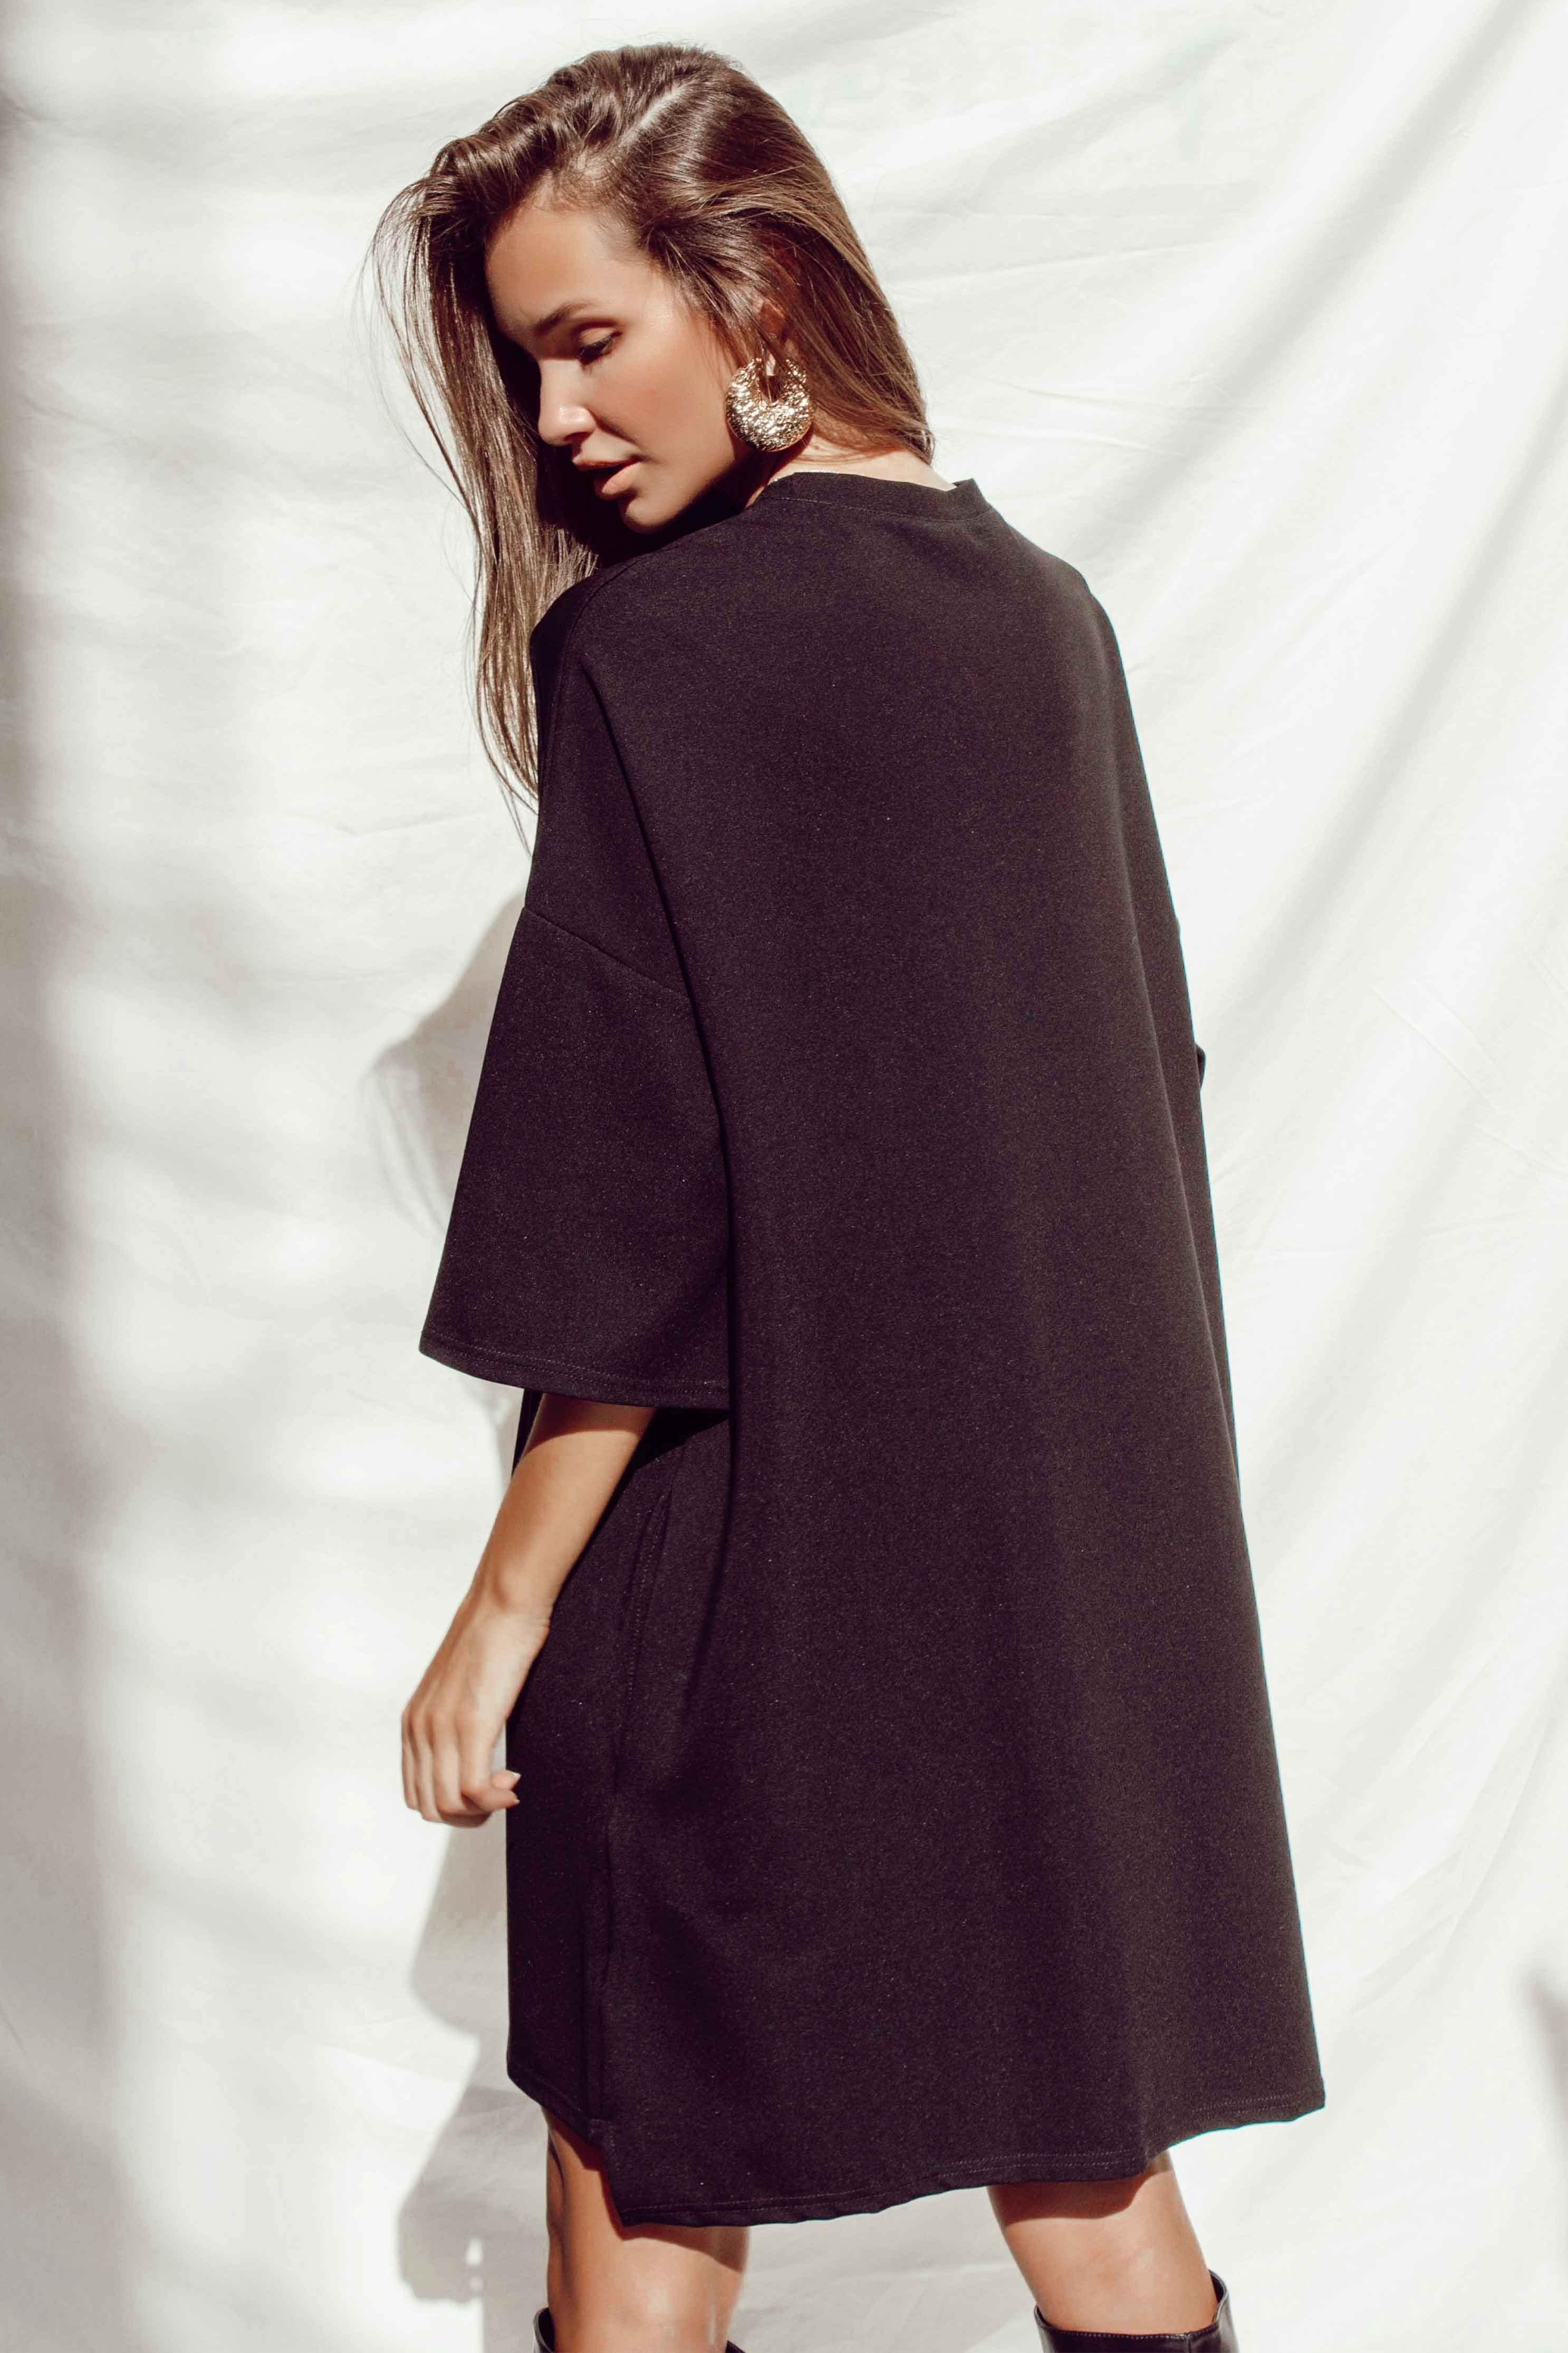 APRYL SHIRT DRESS | Women's Online Shopping | CHICLEFRIQUE